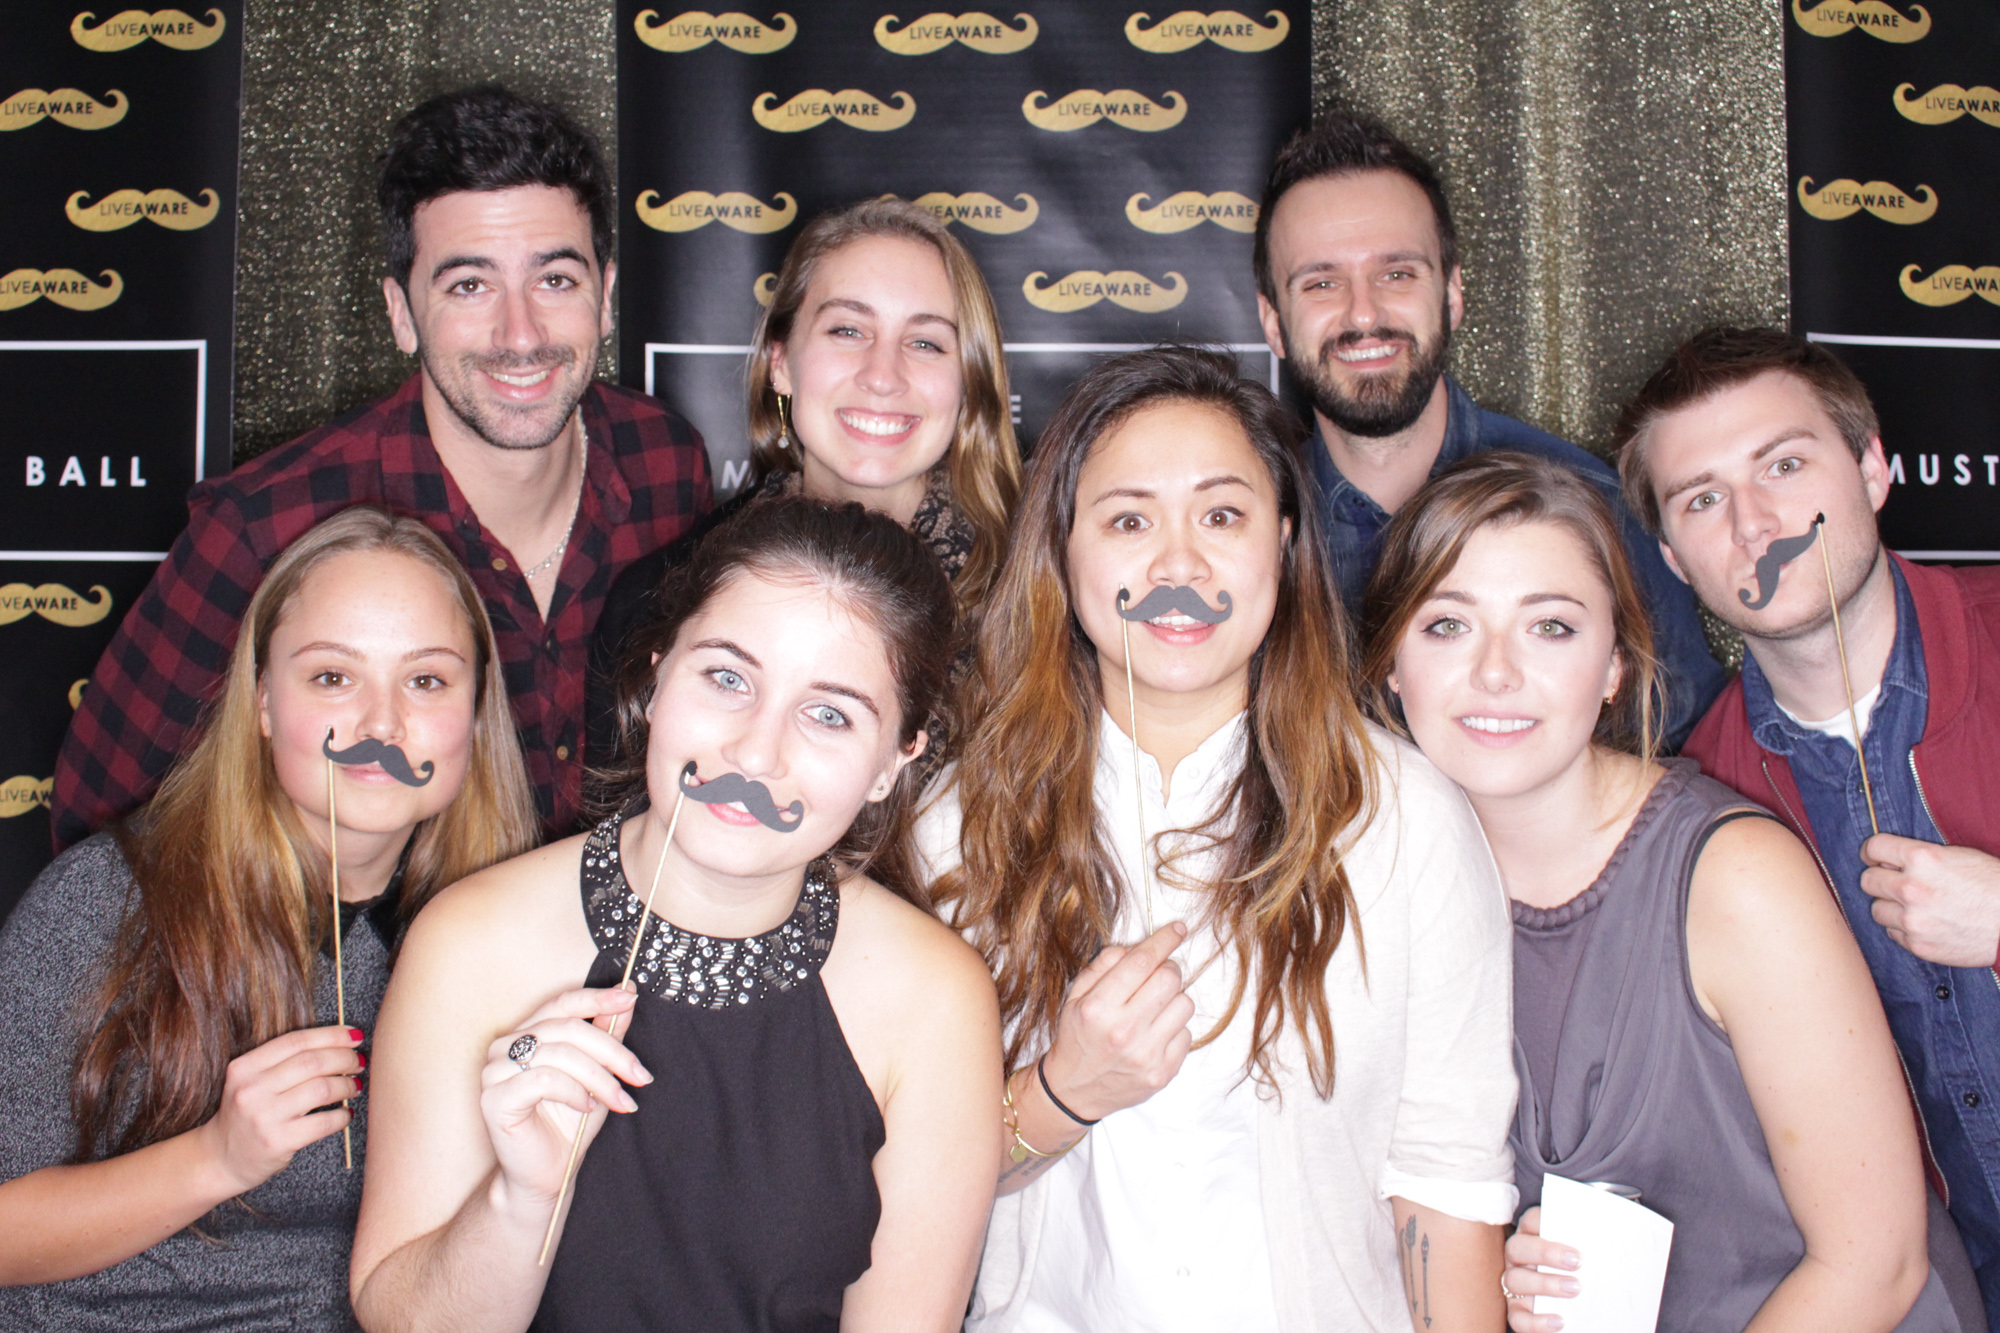 nyc photo booth corporate photo booth mustachio ball